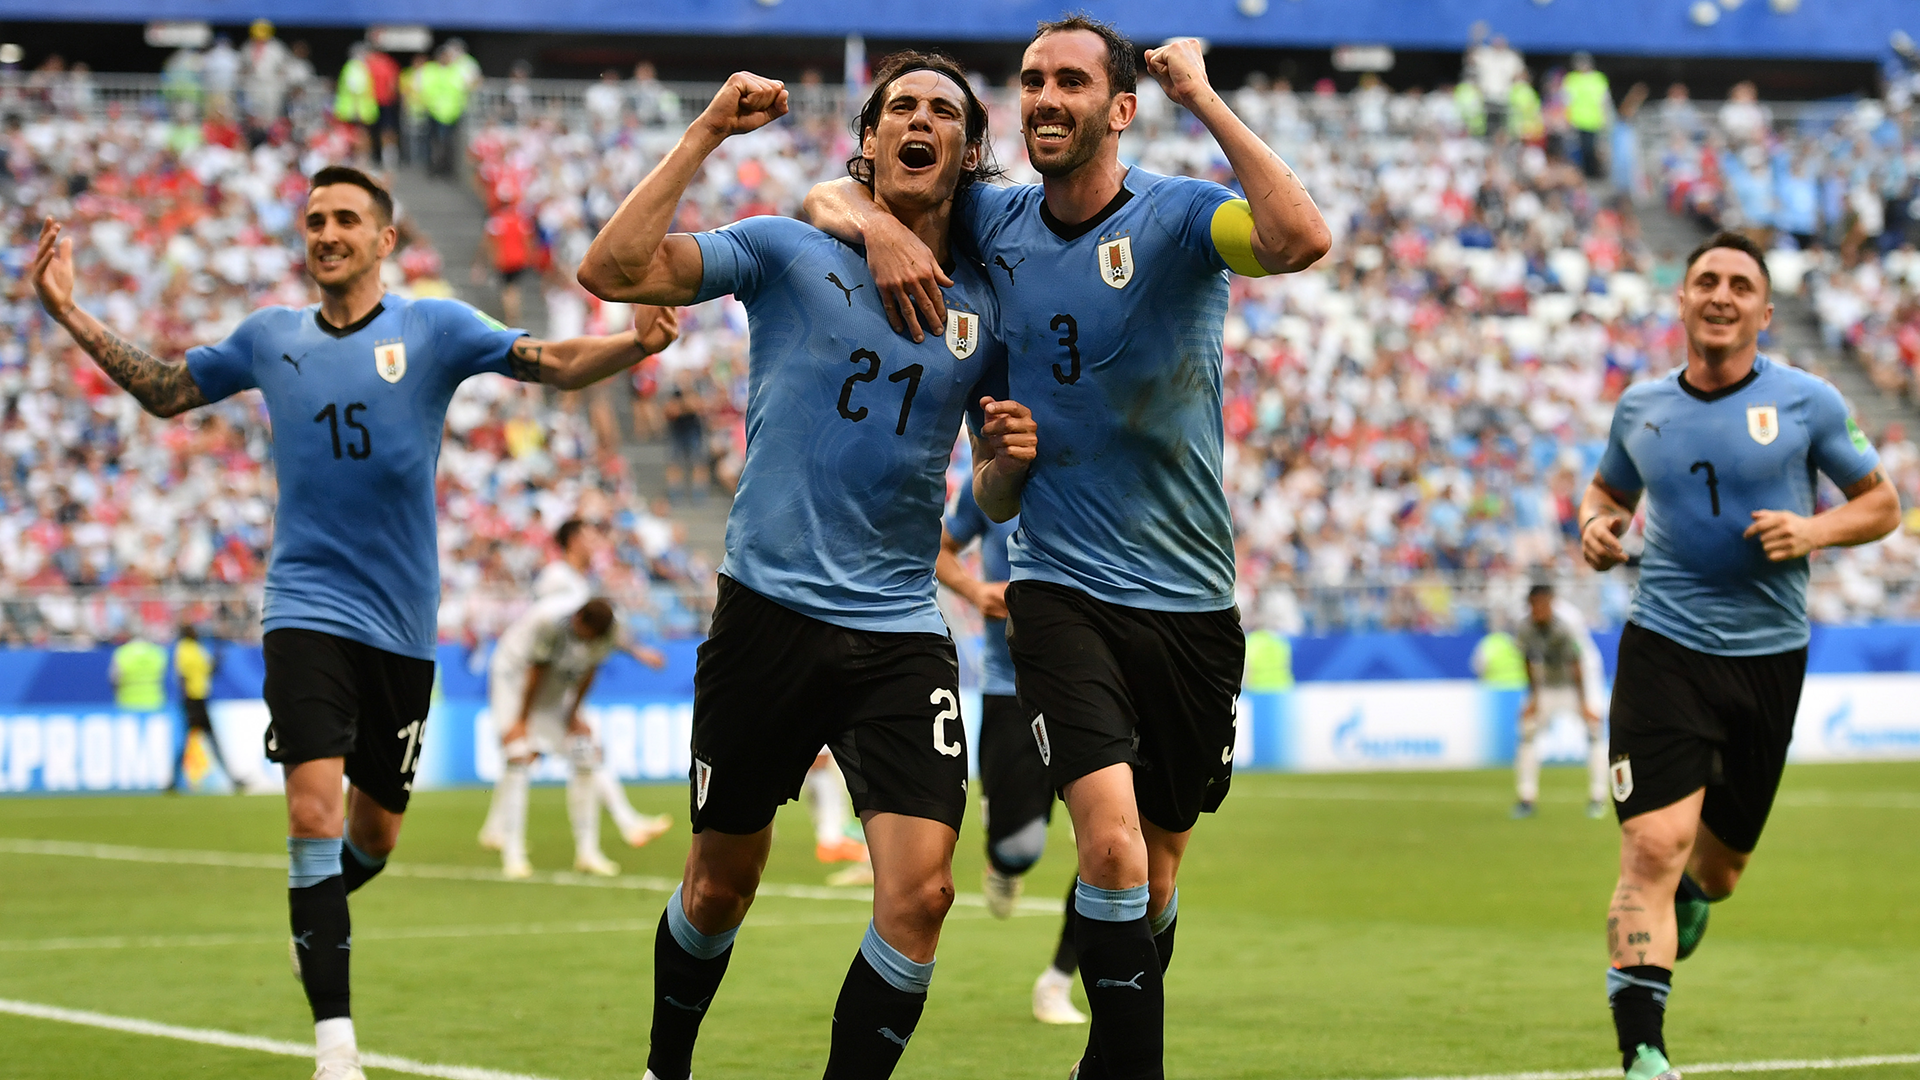 Cavani brace gives Uruguay 2-1 win over Portugal